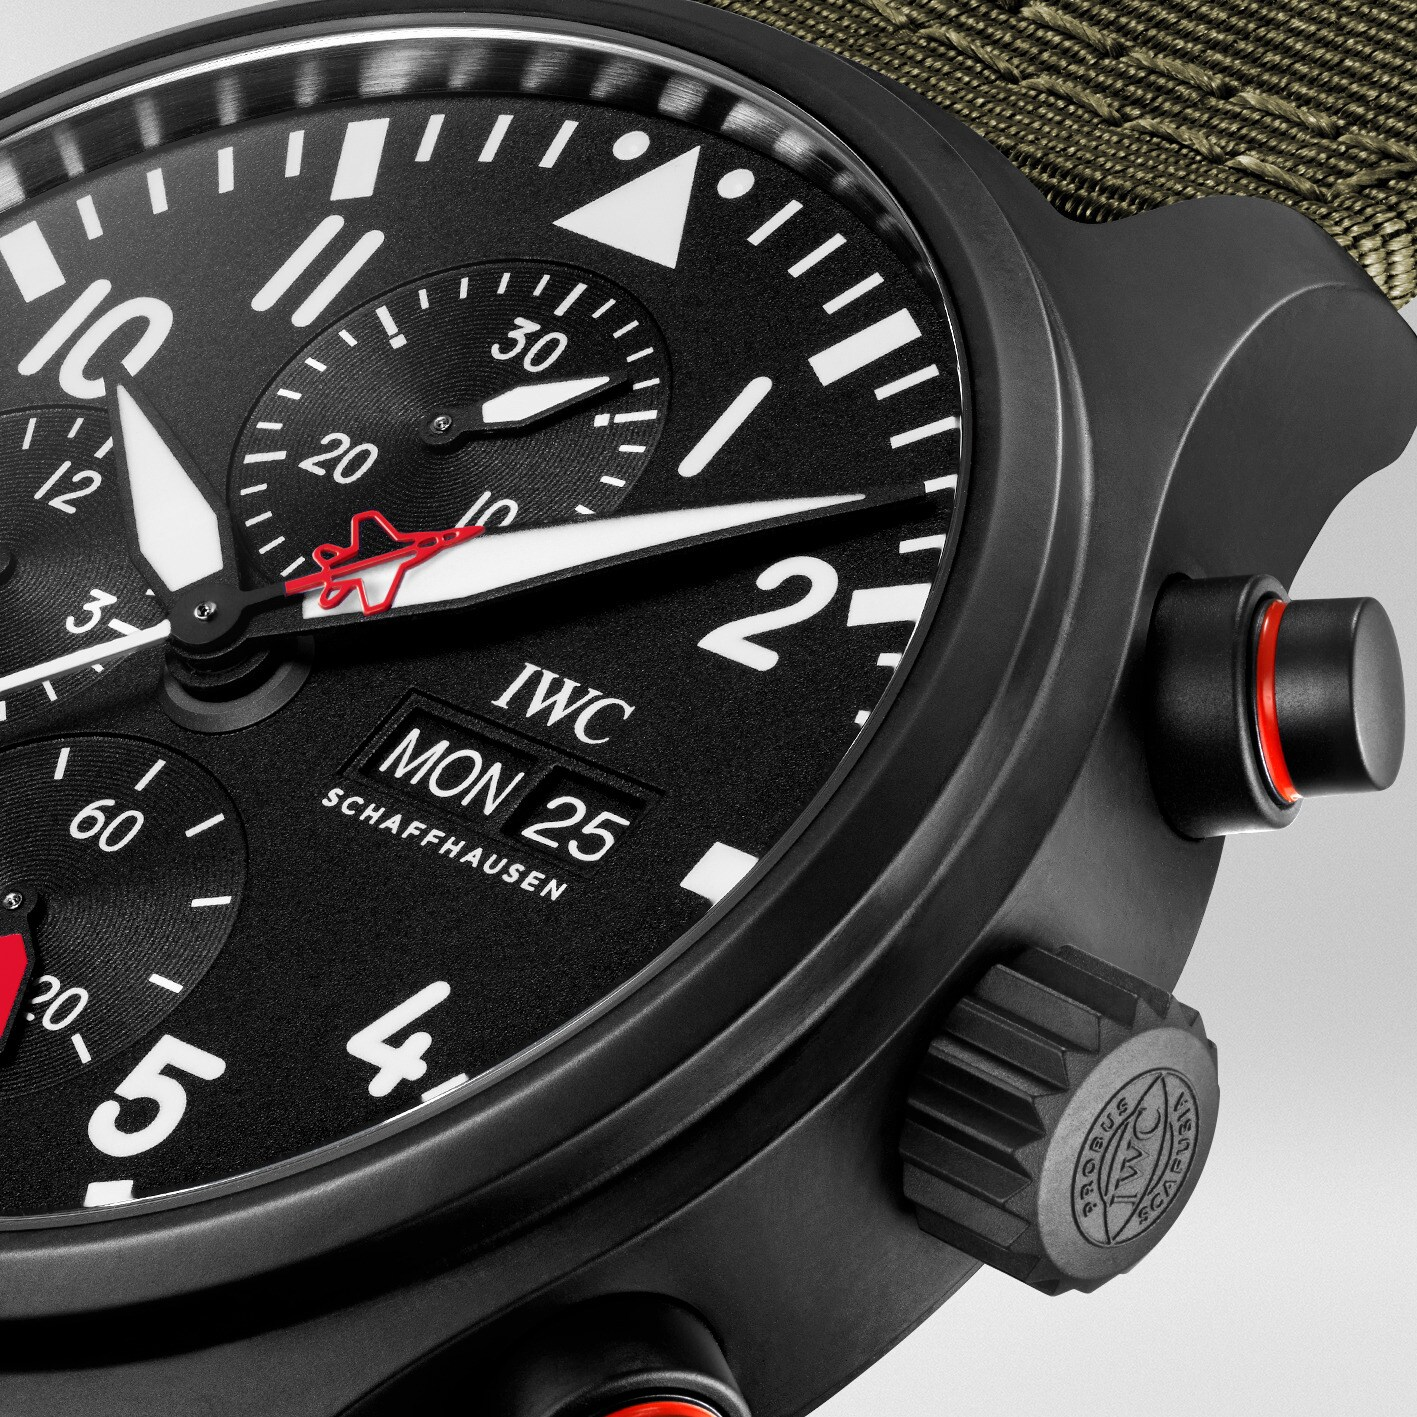 Iwc Pilot Watch Chronograph Top Gun Edition SFTI IW389104 detalle carrura